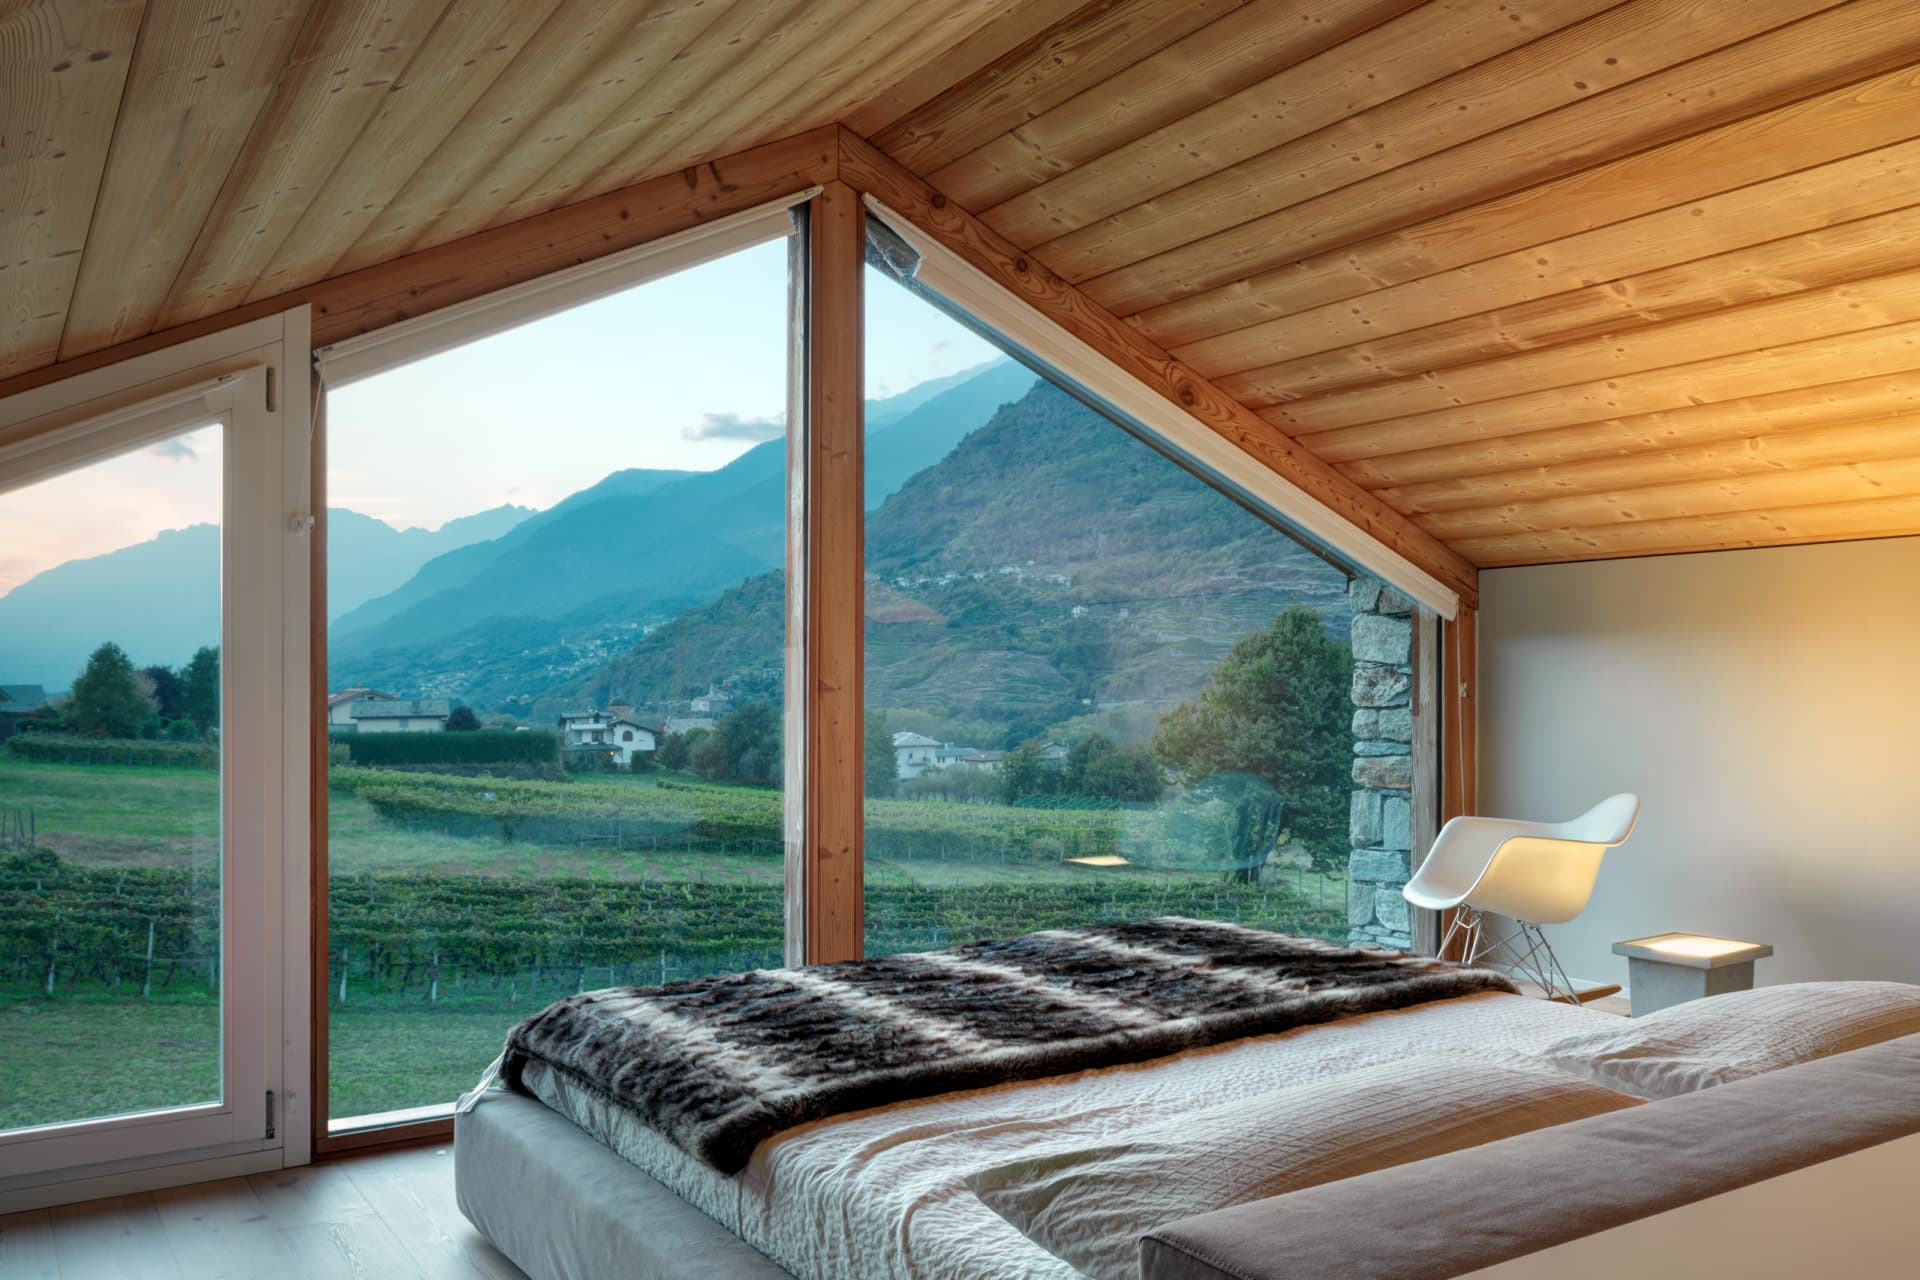 When the sun sets the bedroom gets its most quiet and outstanding view.